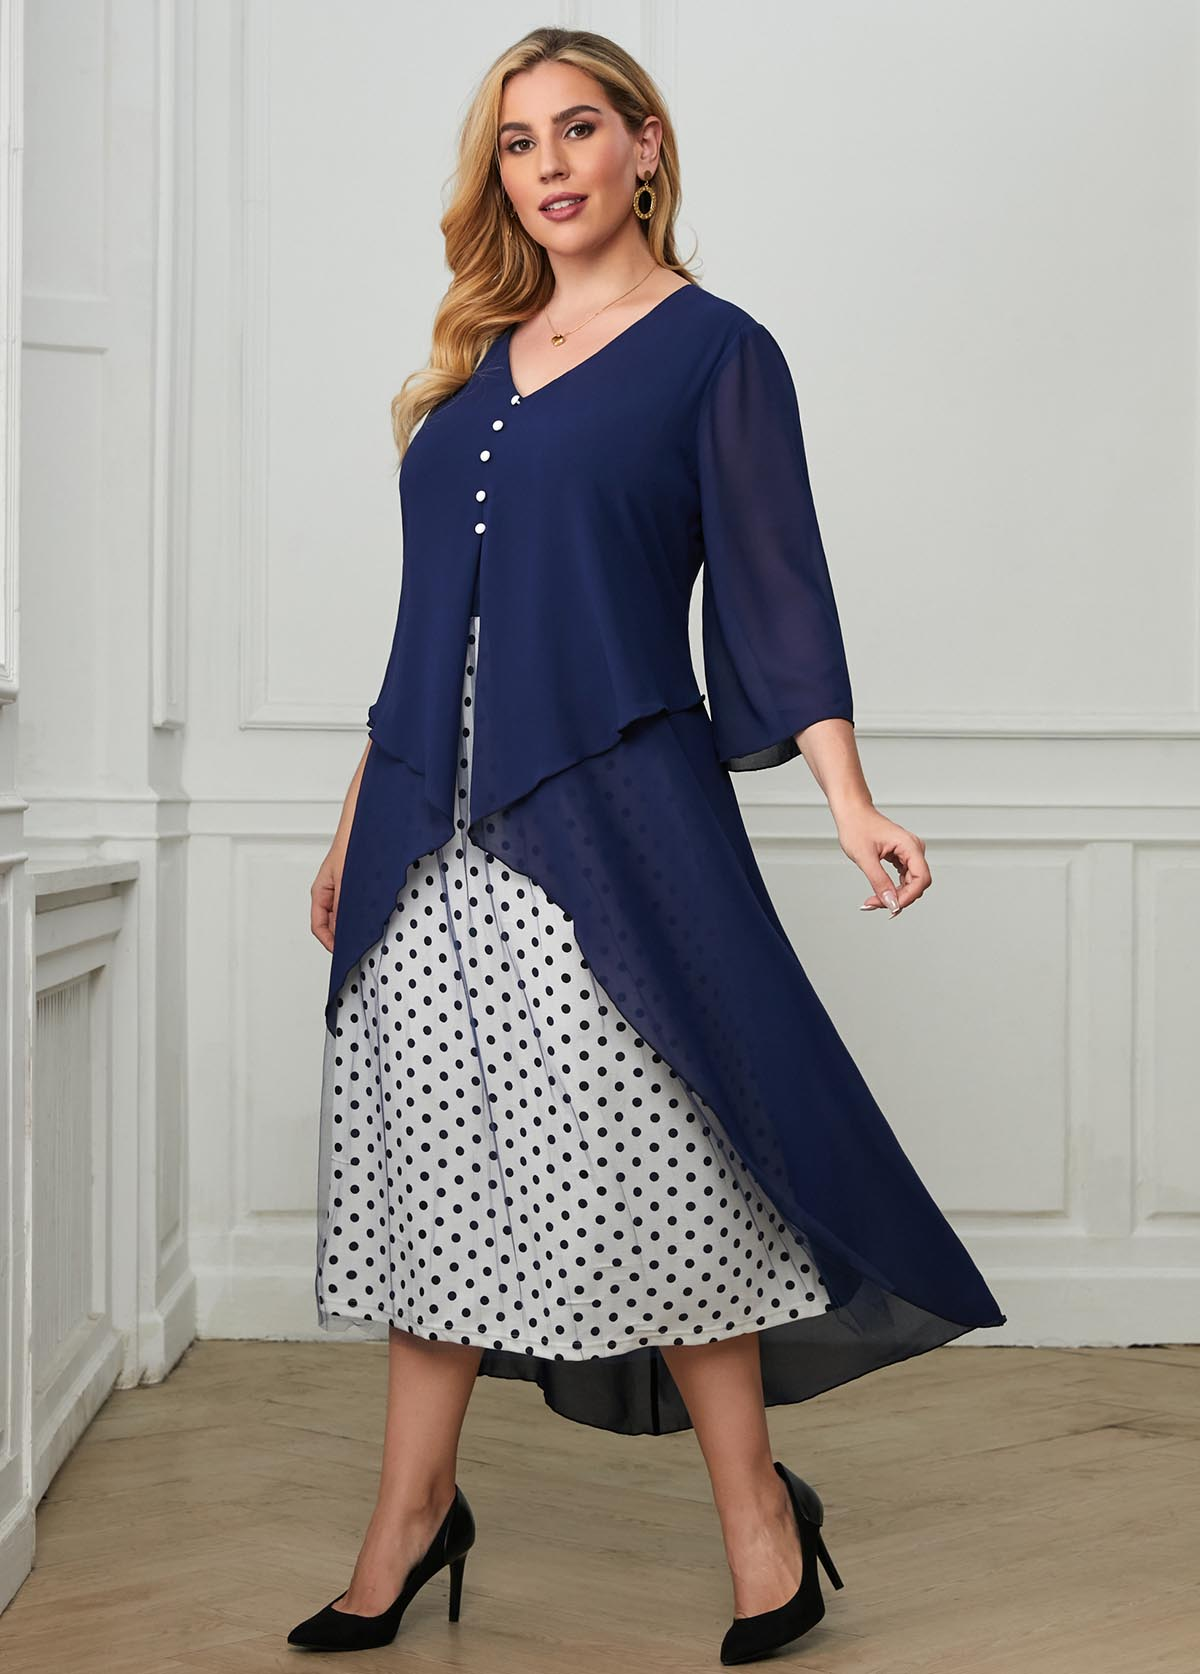 ROTITA Polka Dot Mesh Stitching Layered Plus Size Dress